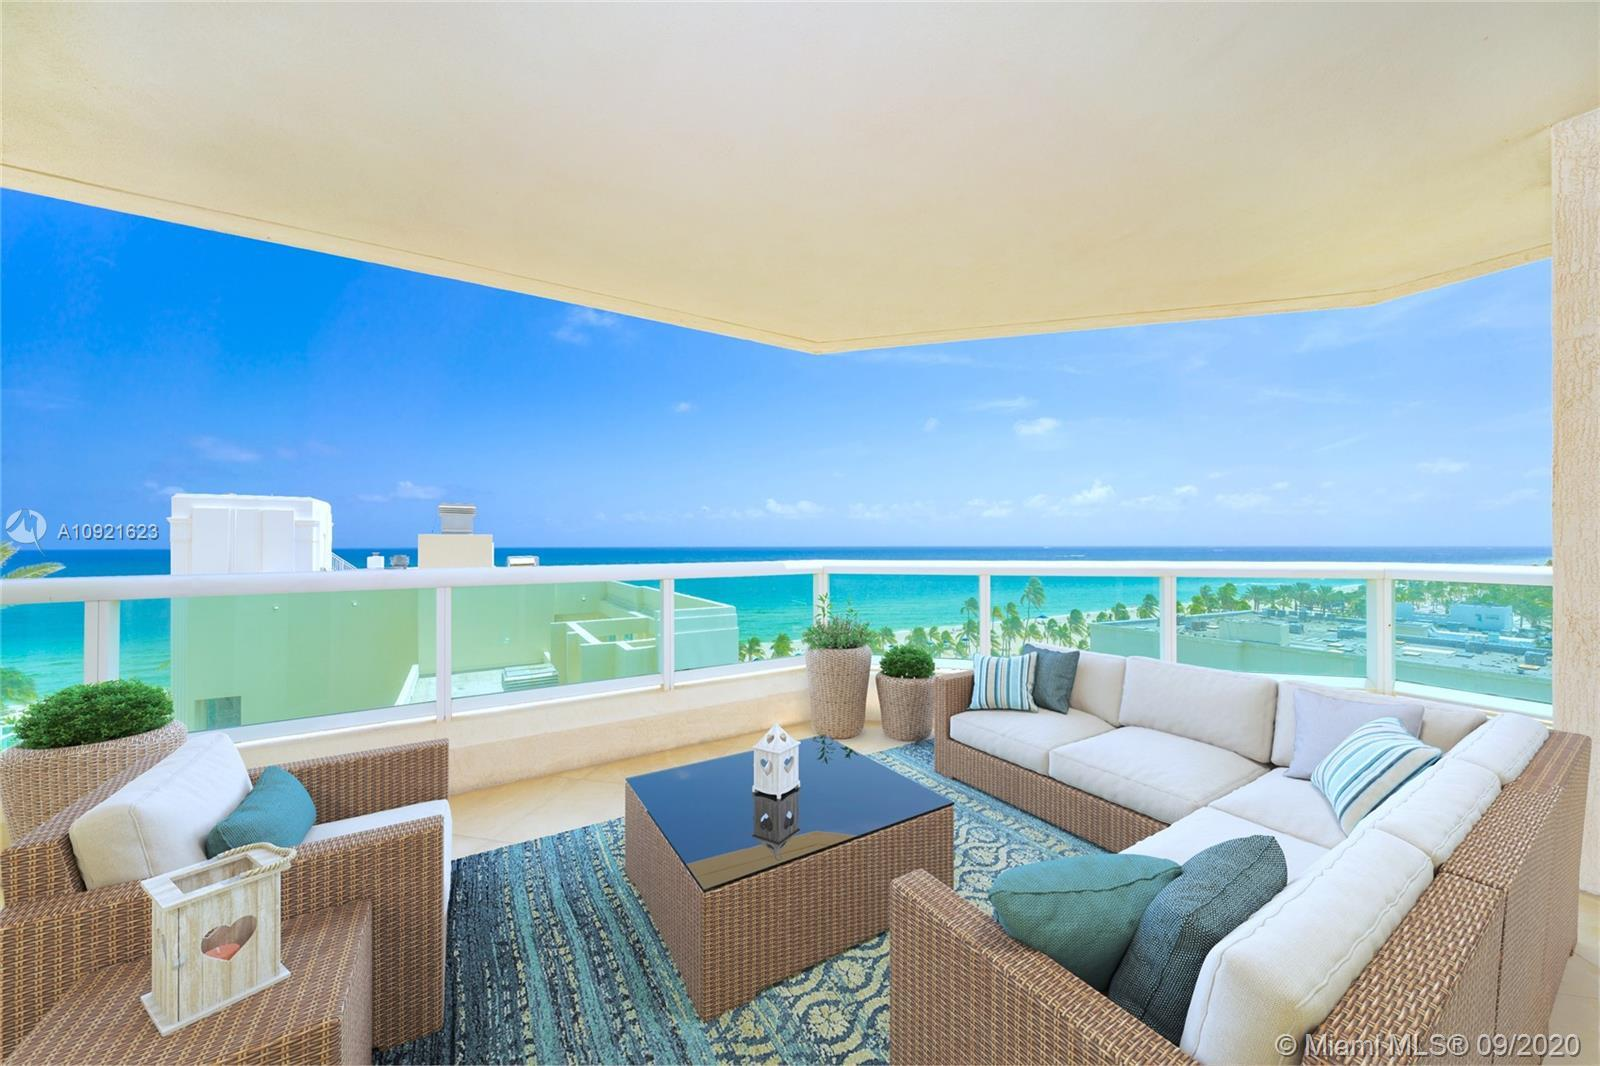 Luxury Turn-Key, Move in Ready, Direct Oceanfront condo that is located in the heart of Fort Lauderd